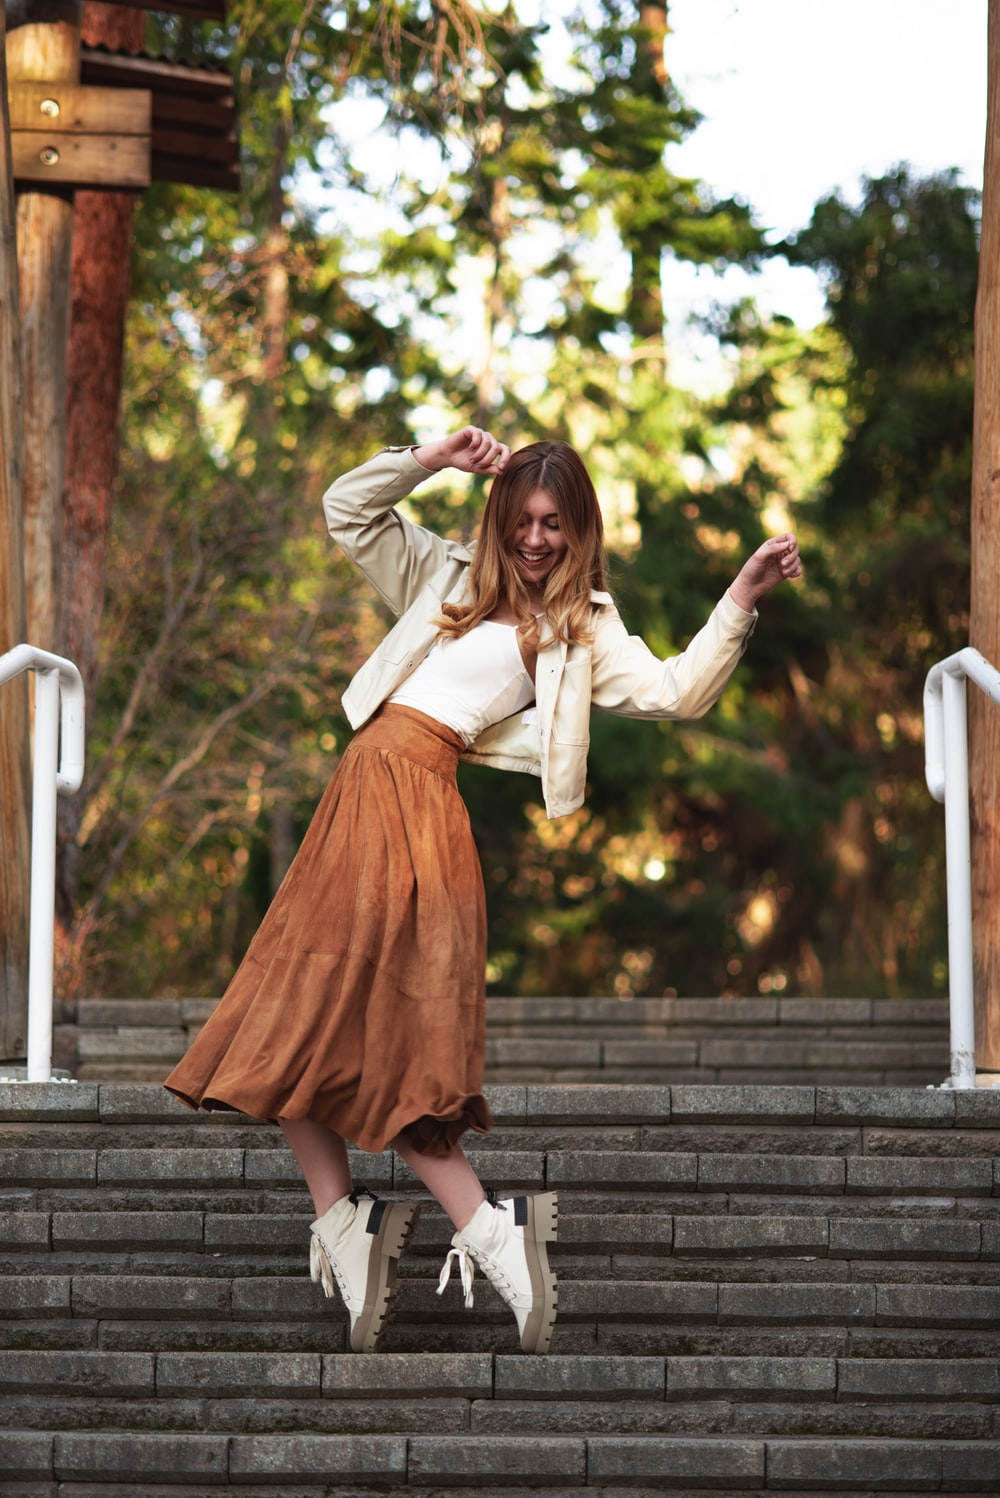 woman in white long sleeve shirt and red skirt sitting on white wooden bench